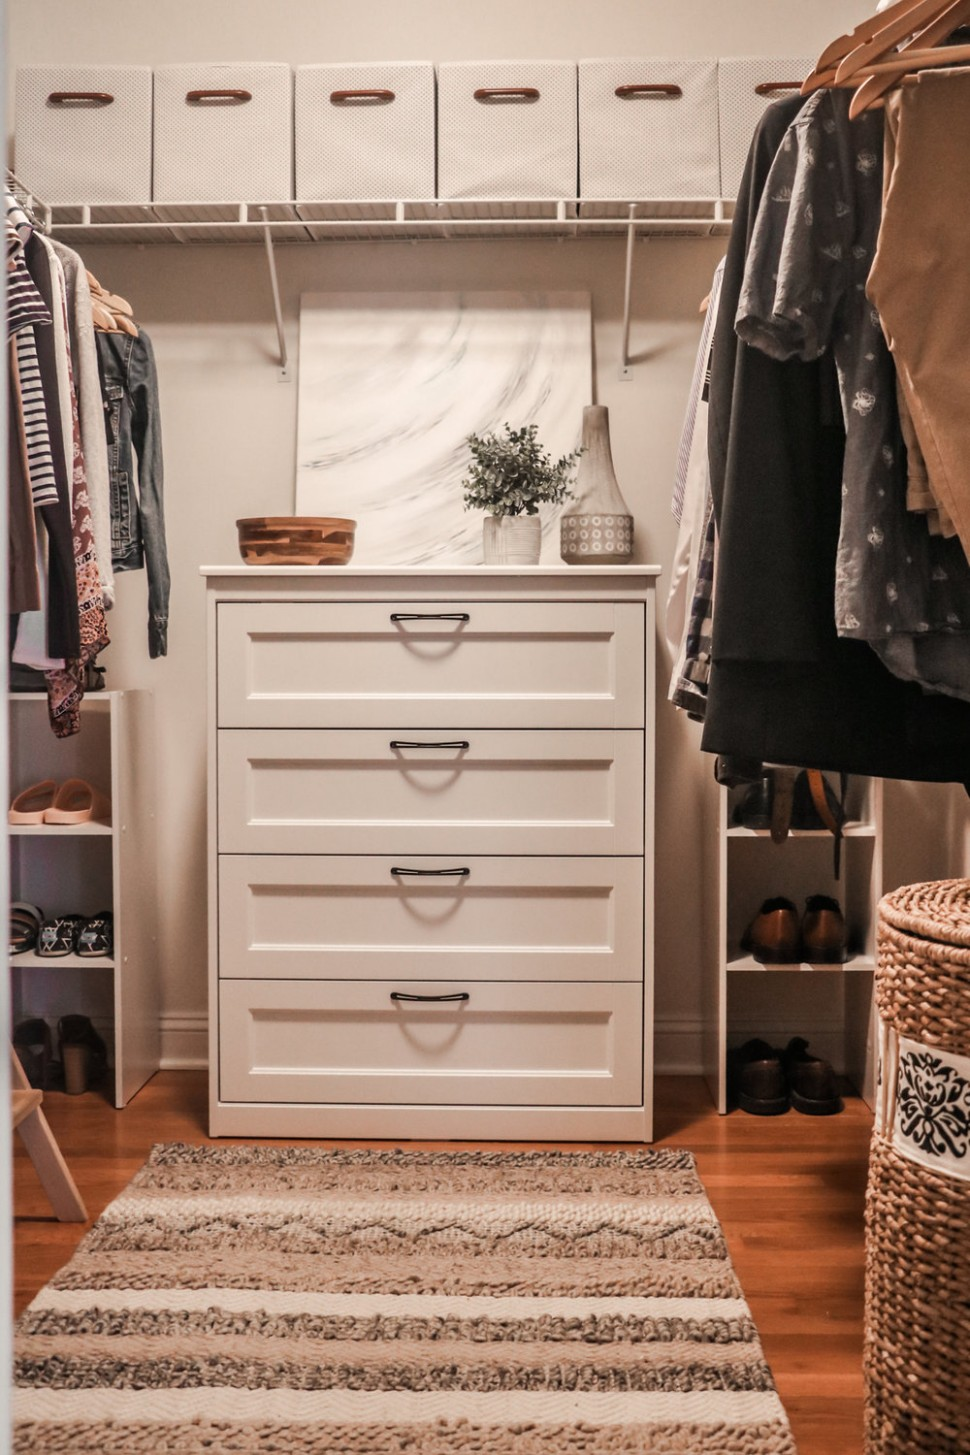 Master Bedroom Closet  Small Changes For a Big Change — root + dwell - Closet Ideas Master Bedroom